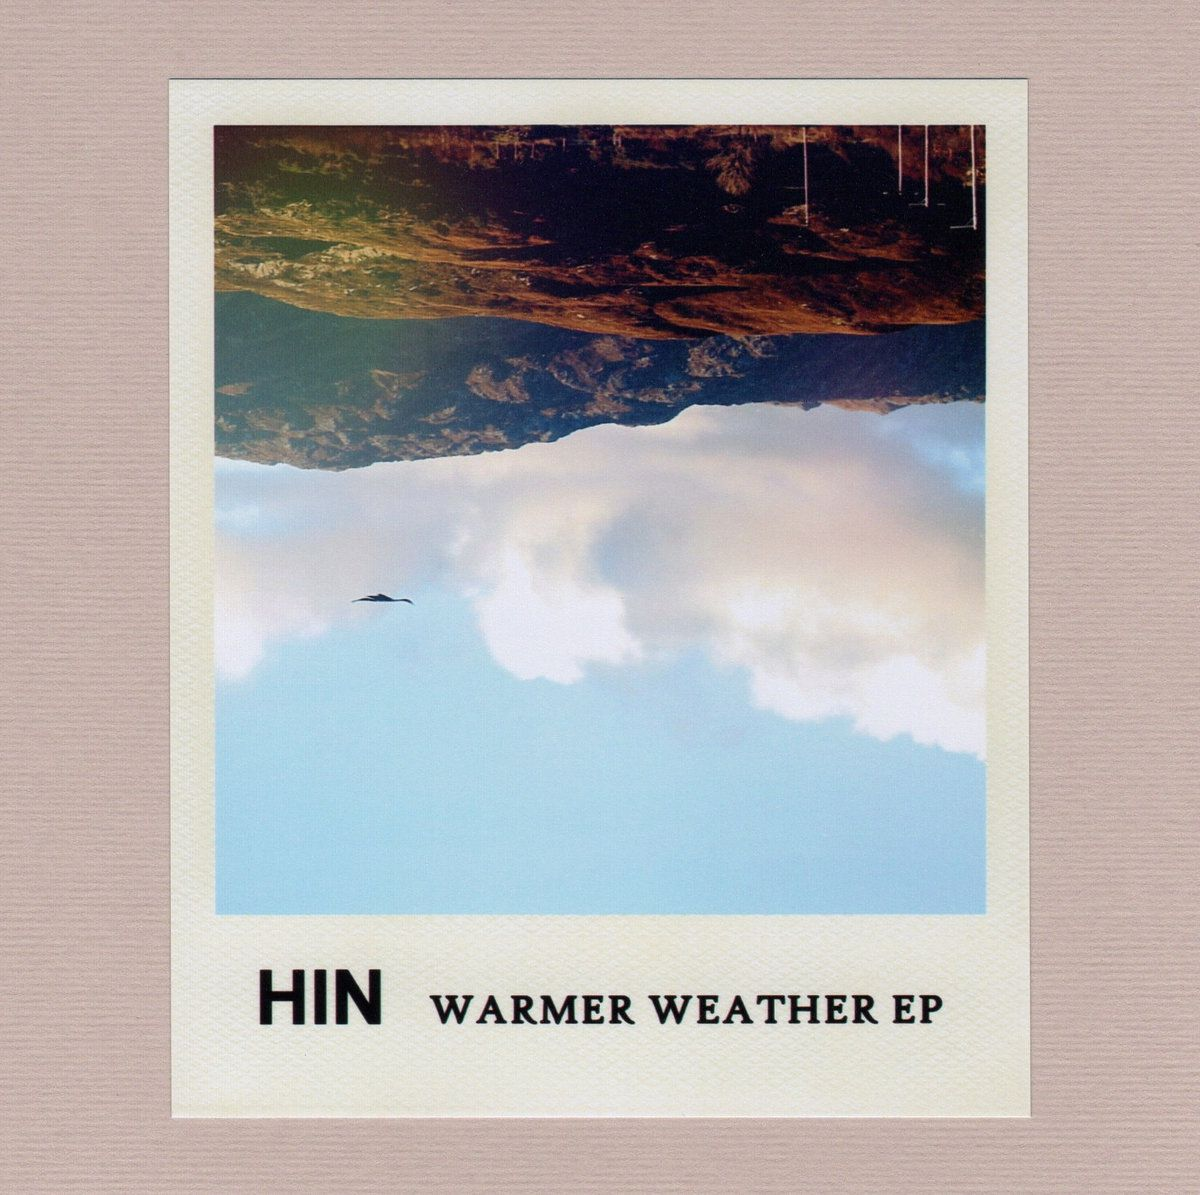 Warmer Weather EP